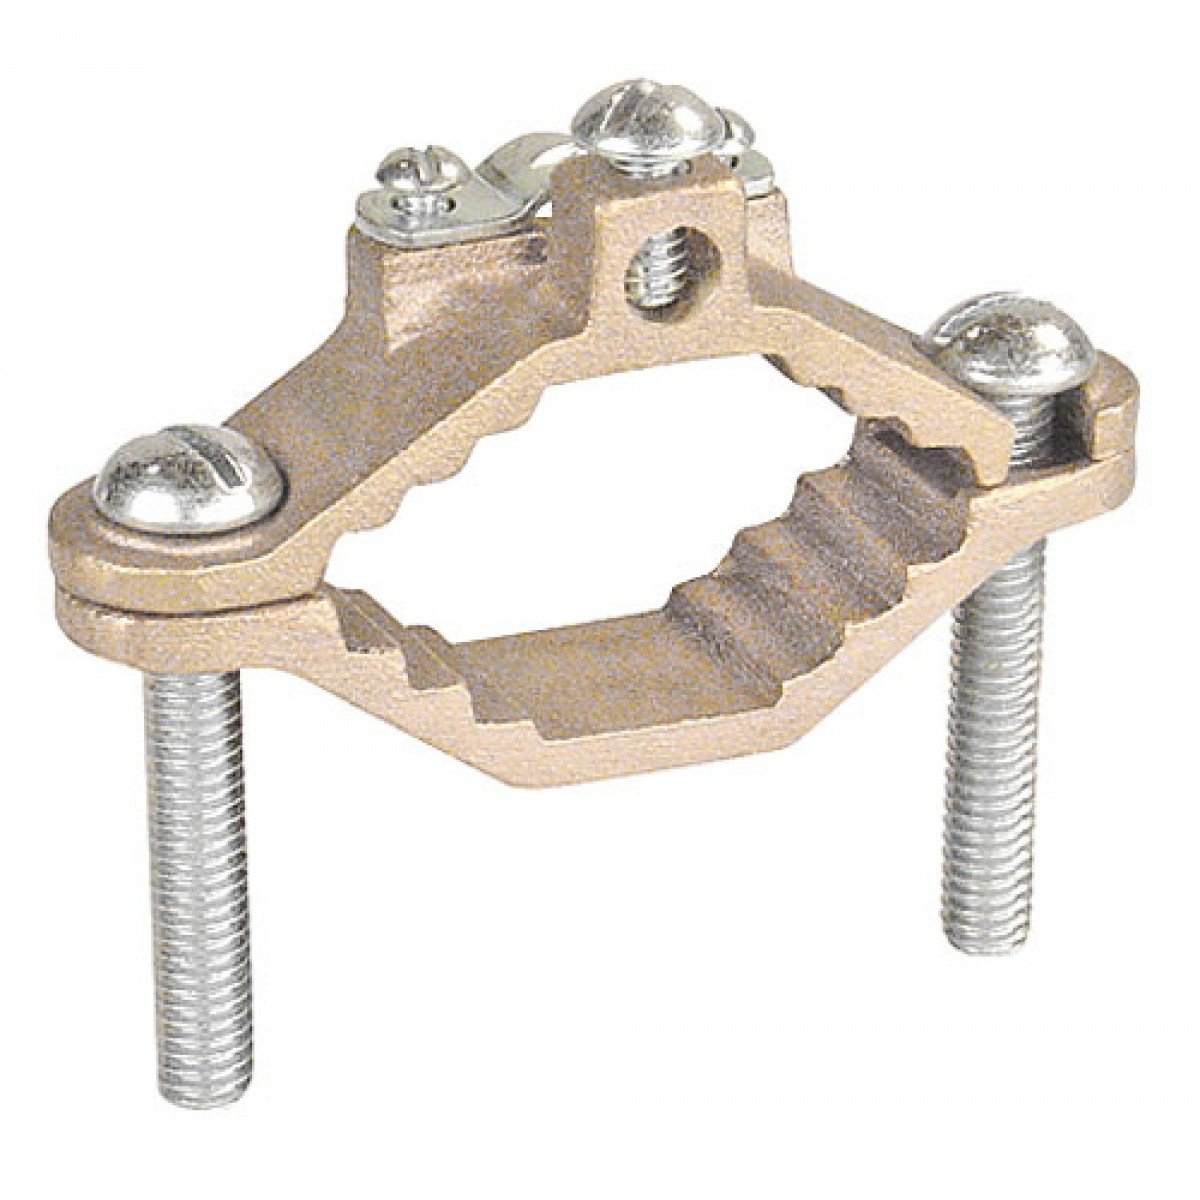 1 Pc, Bronze Ground Clamp for Armored Ground Cable & Pipe Size 1-1/4 to 2 In., Bronze Clamp w/Steel Screws to Ground Bare Armored Ground Cable to Water Pipes, Ground Rods, Rebar